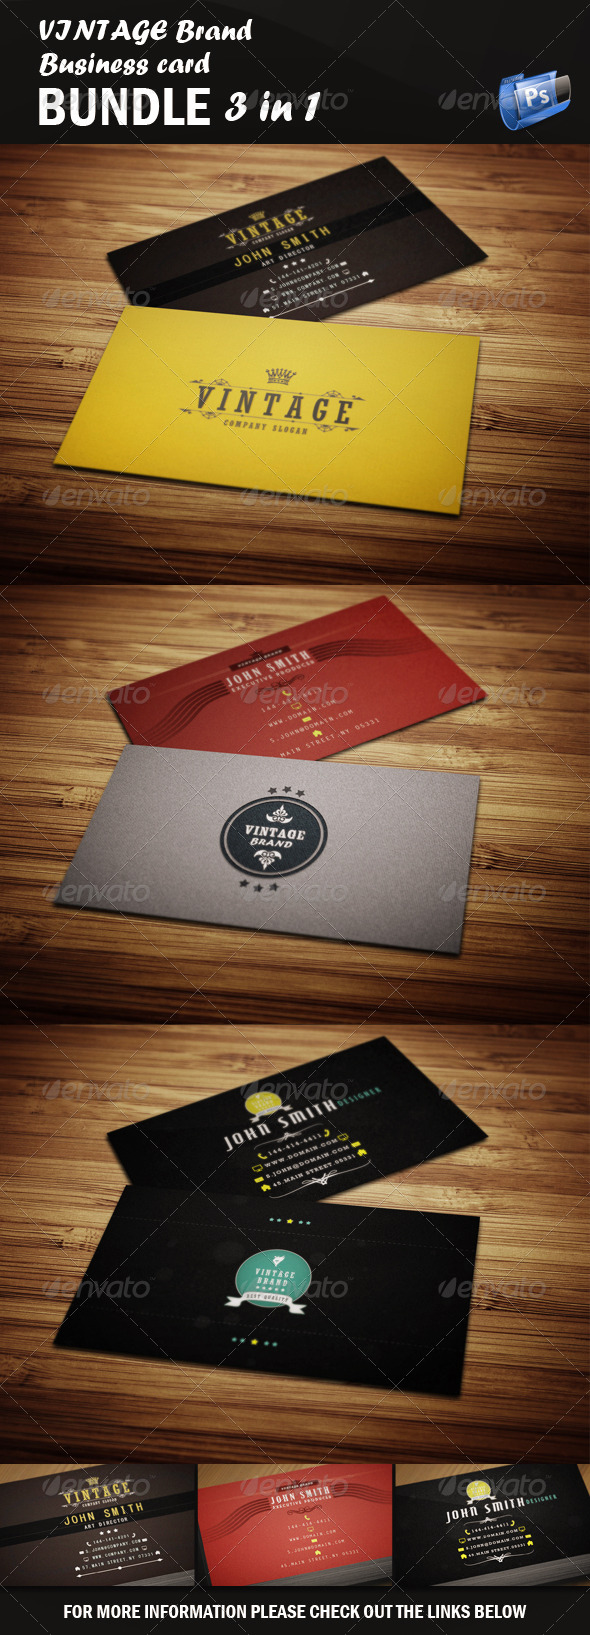 Vintage Business Card - Bundle - Retro/Vintage Business Cards